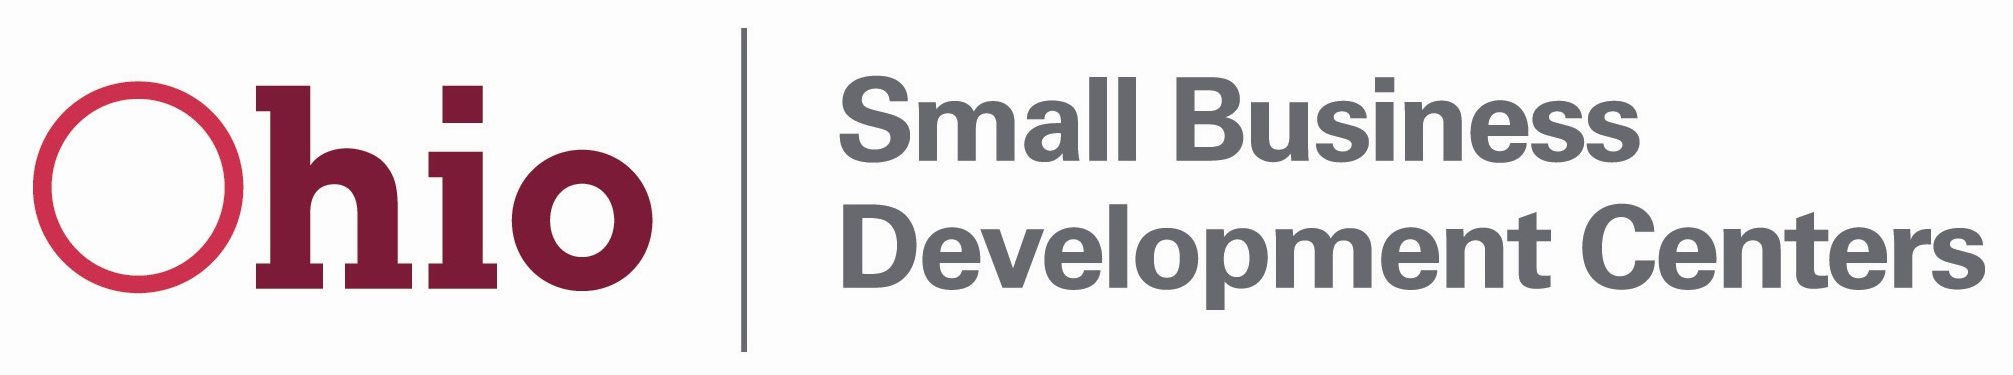 Small Business Dev Center Logo